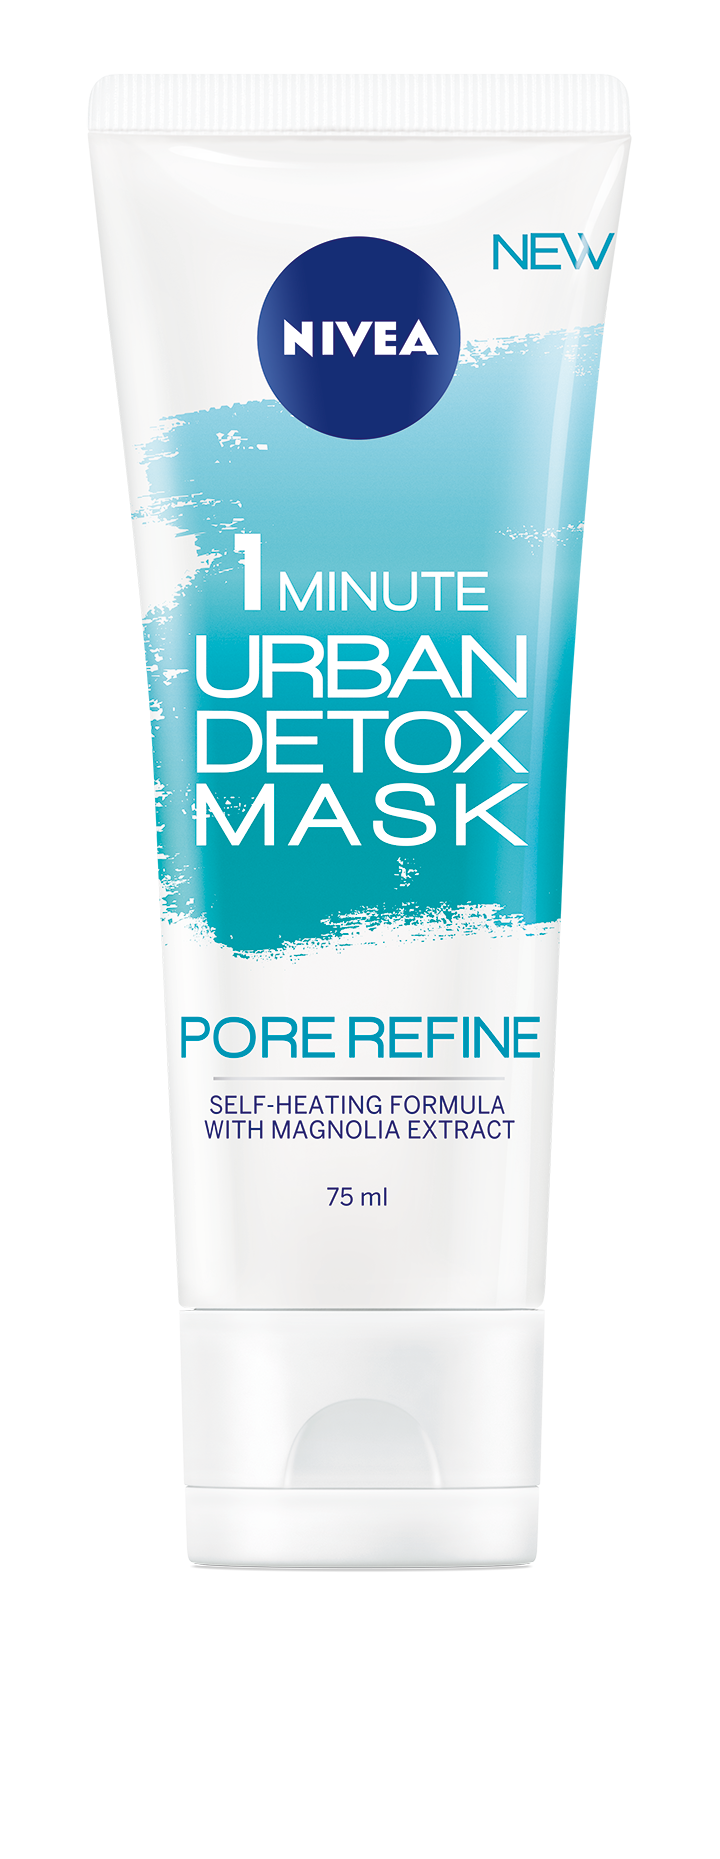 NIVEA_1_Minute_URBAN_Detox_Mask_PoreRefine_75ml